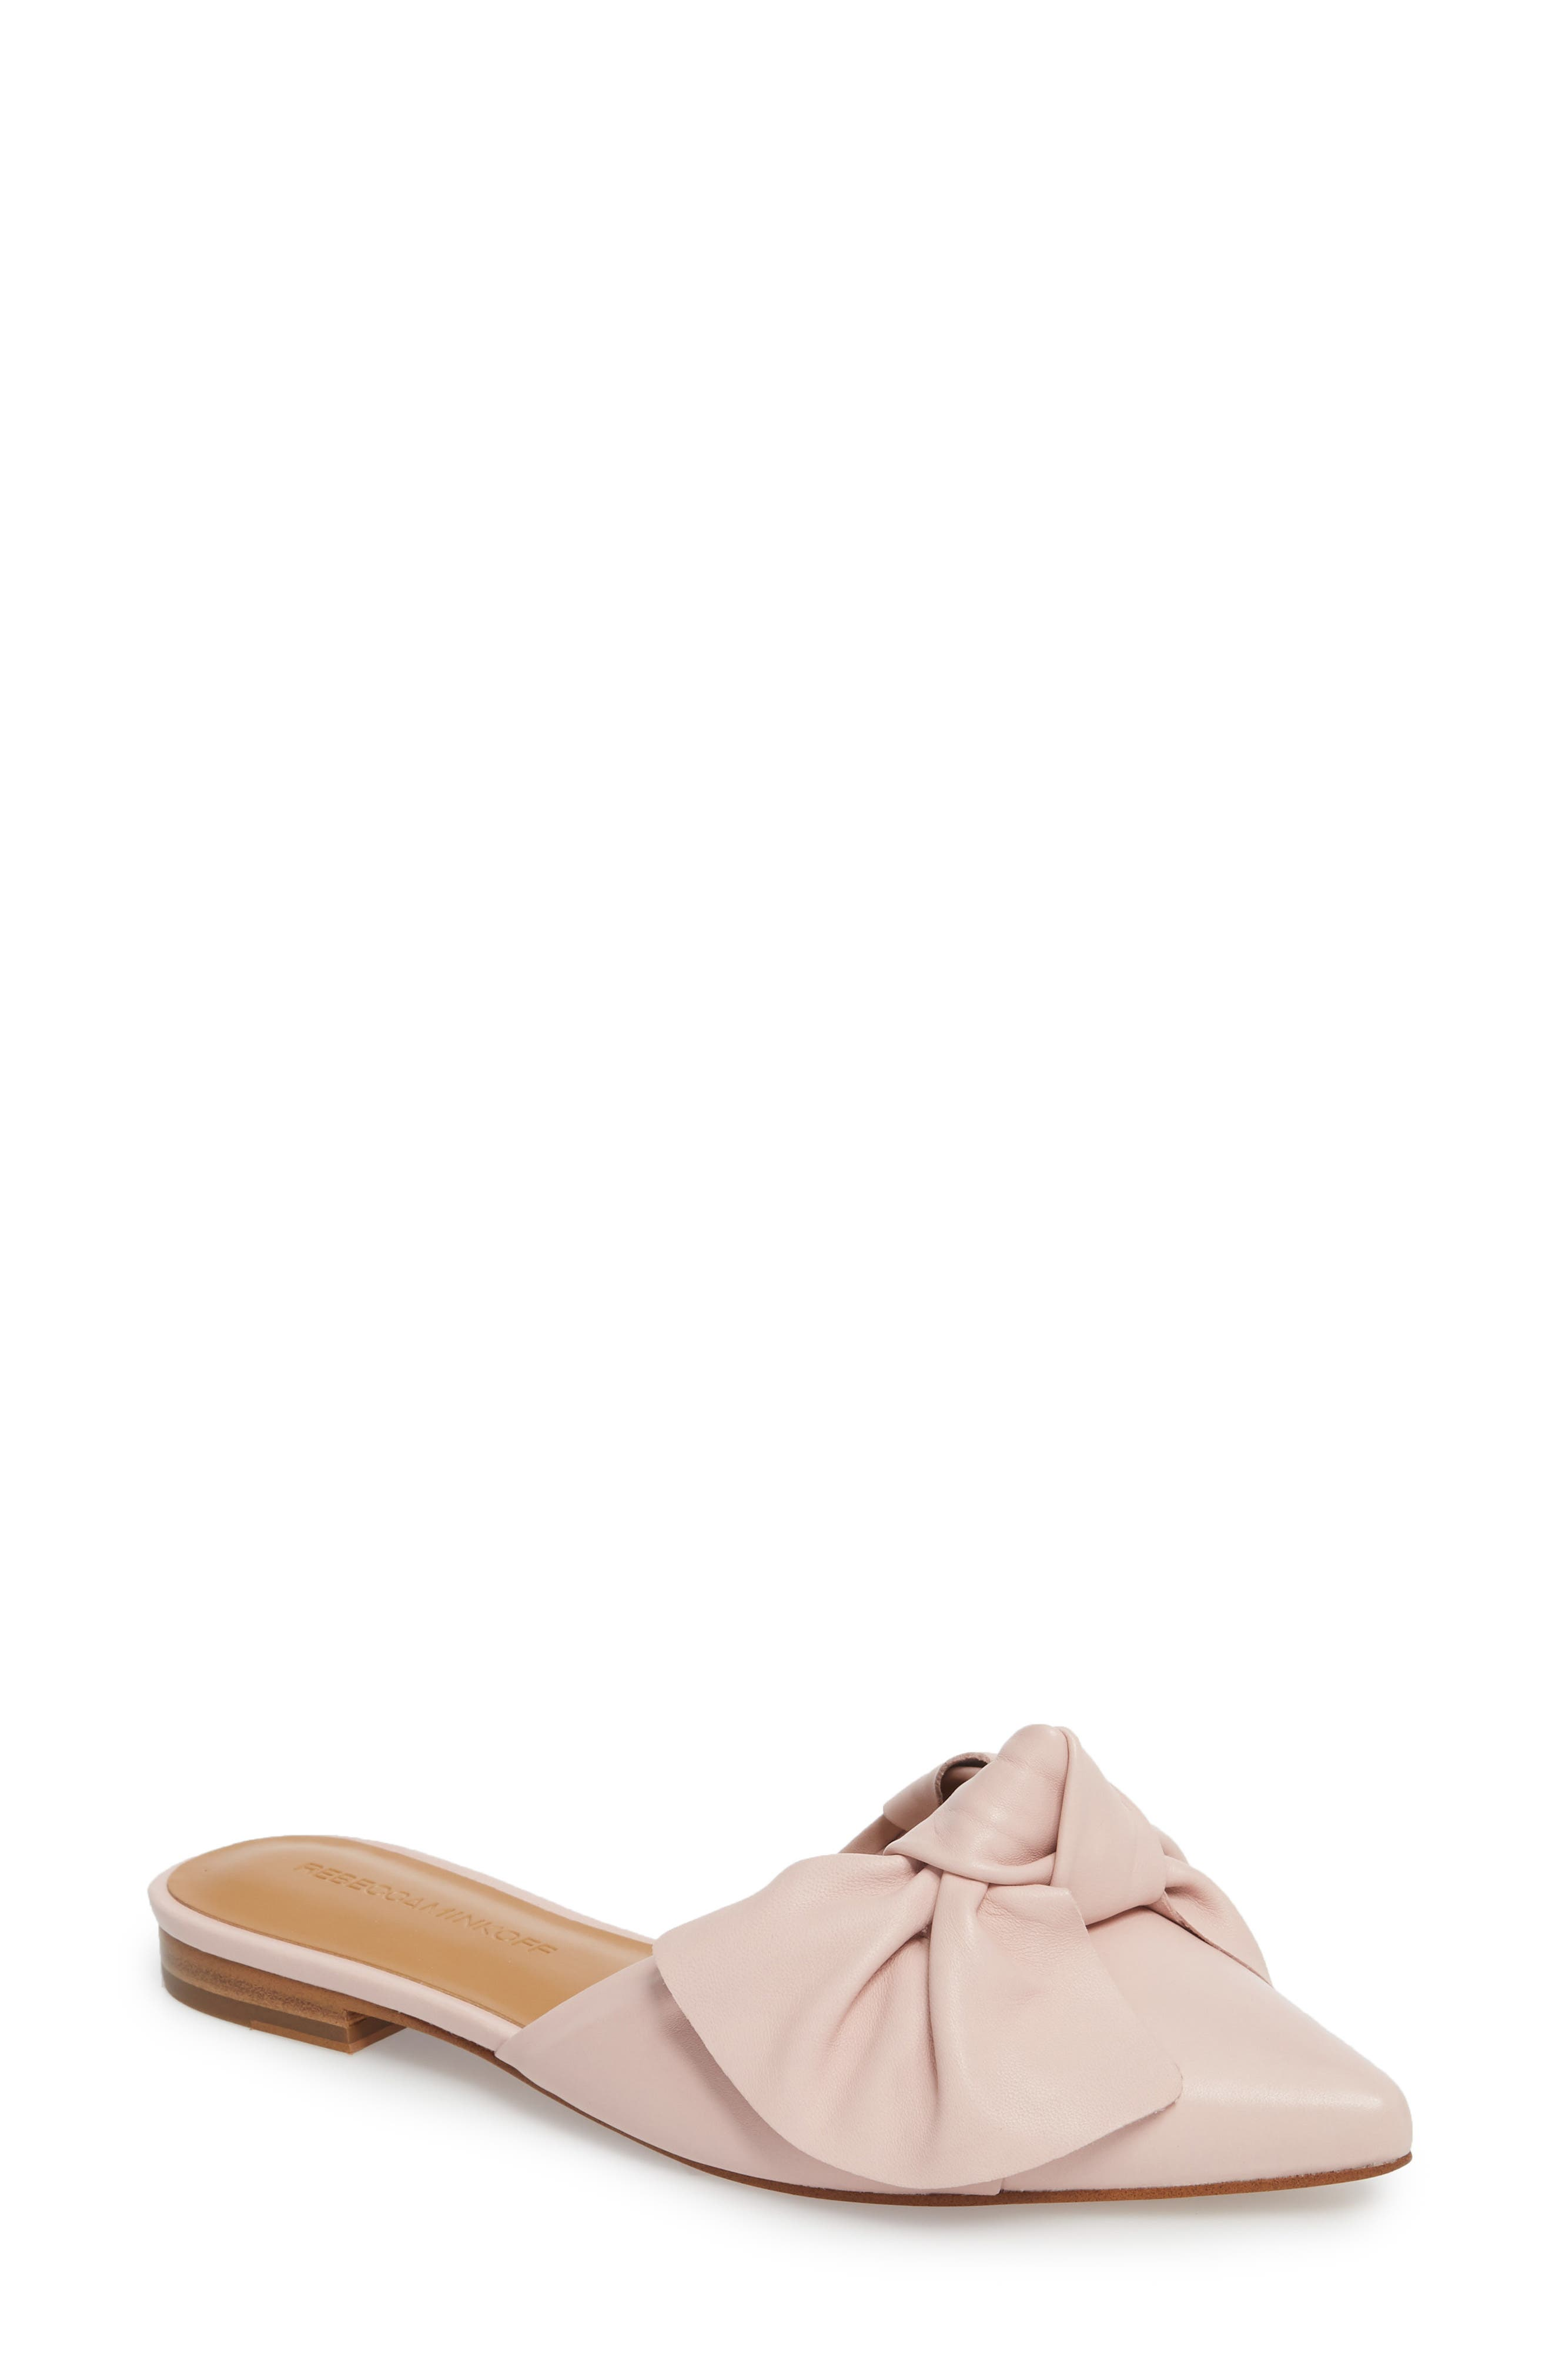 Alexis Bow Mule,                             Main thumbnail 1, color,                             MILLENNIAL PINK LEATHER